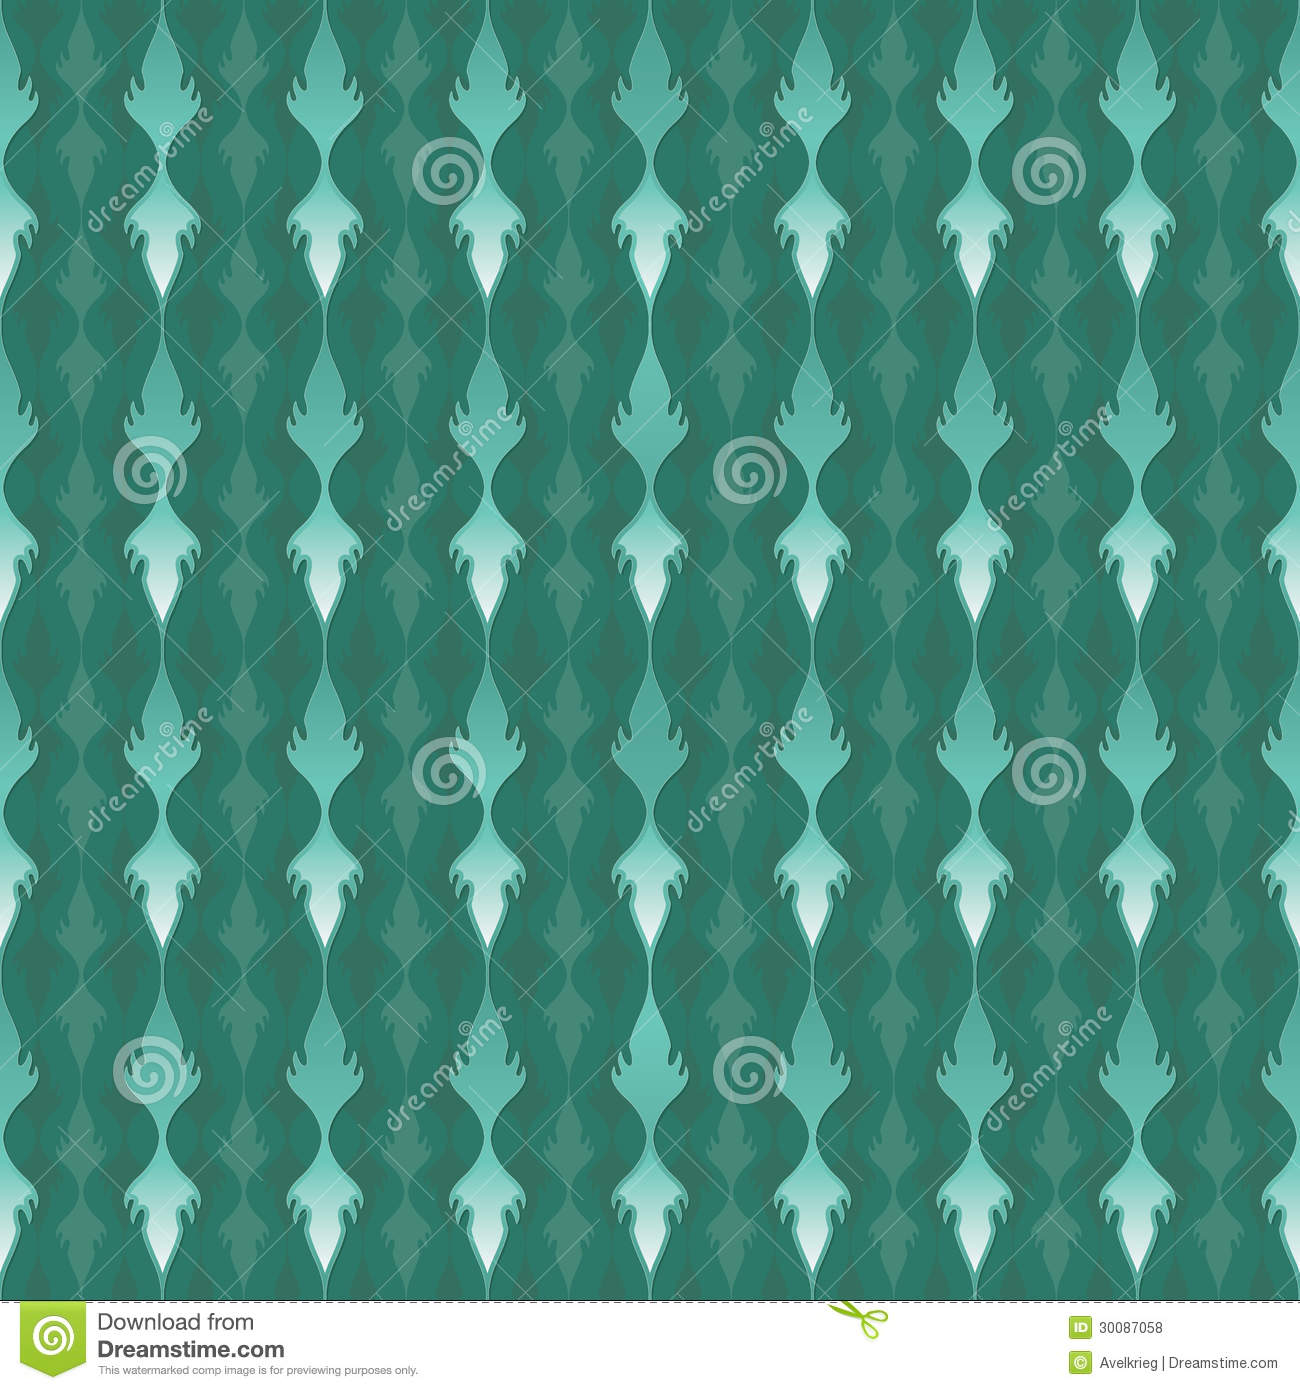 Elegant Teal Pattern Royalty Free Stock Photos   Image 30087058